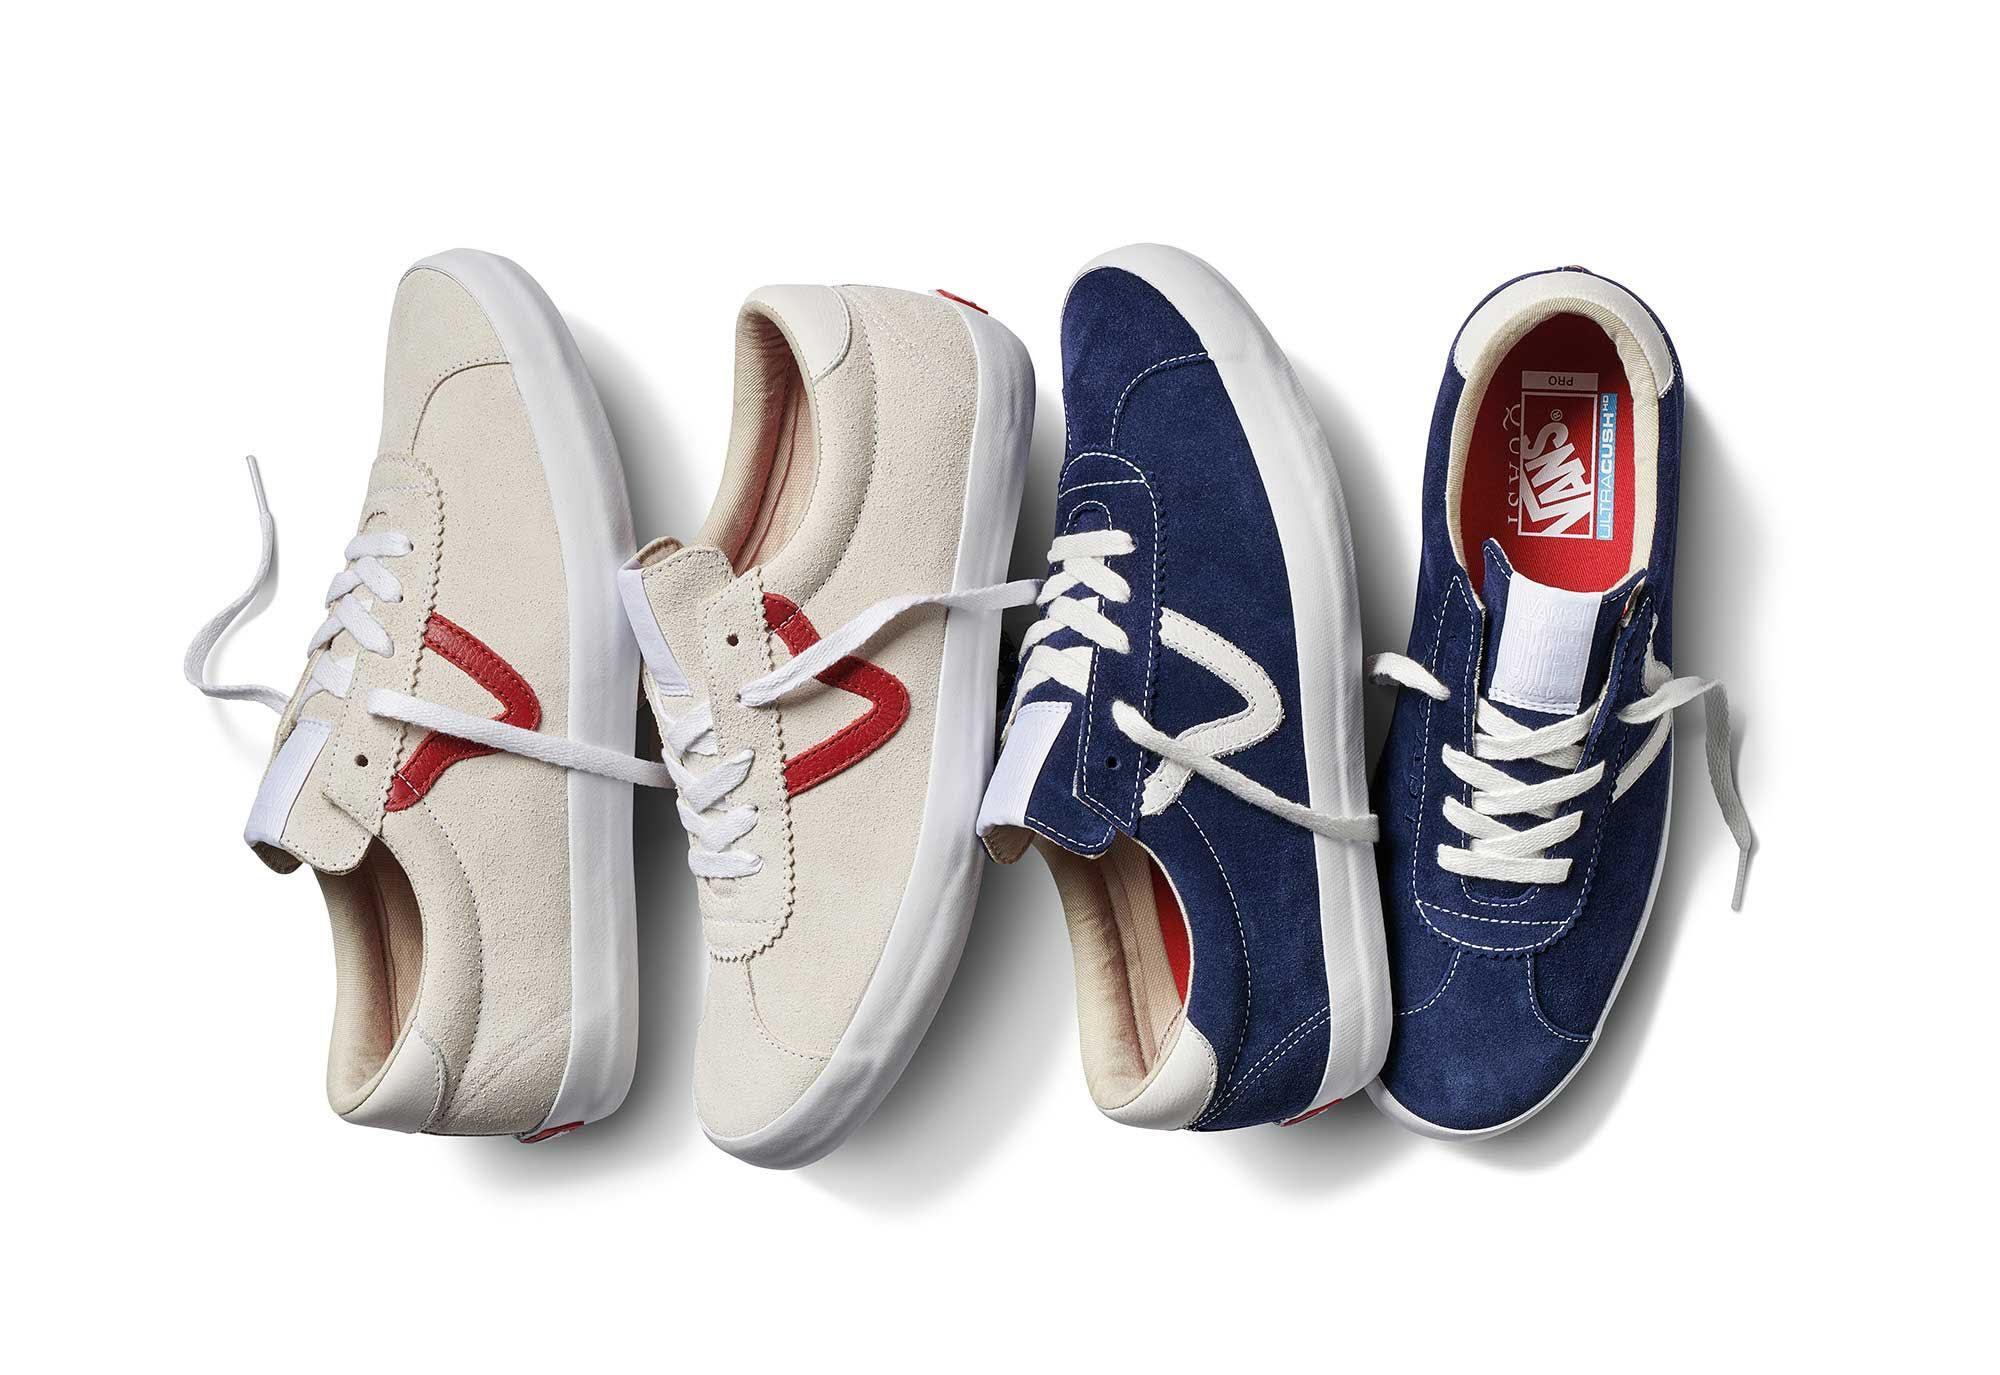 41d253e7049 Vans and Quasi have teamed up yet again for an exciting shoe release